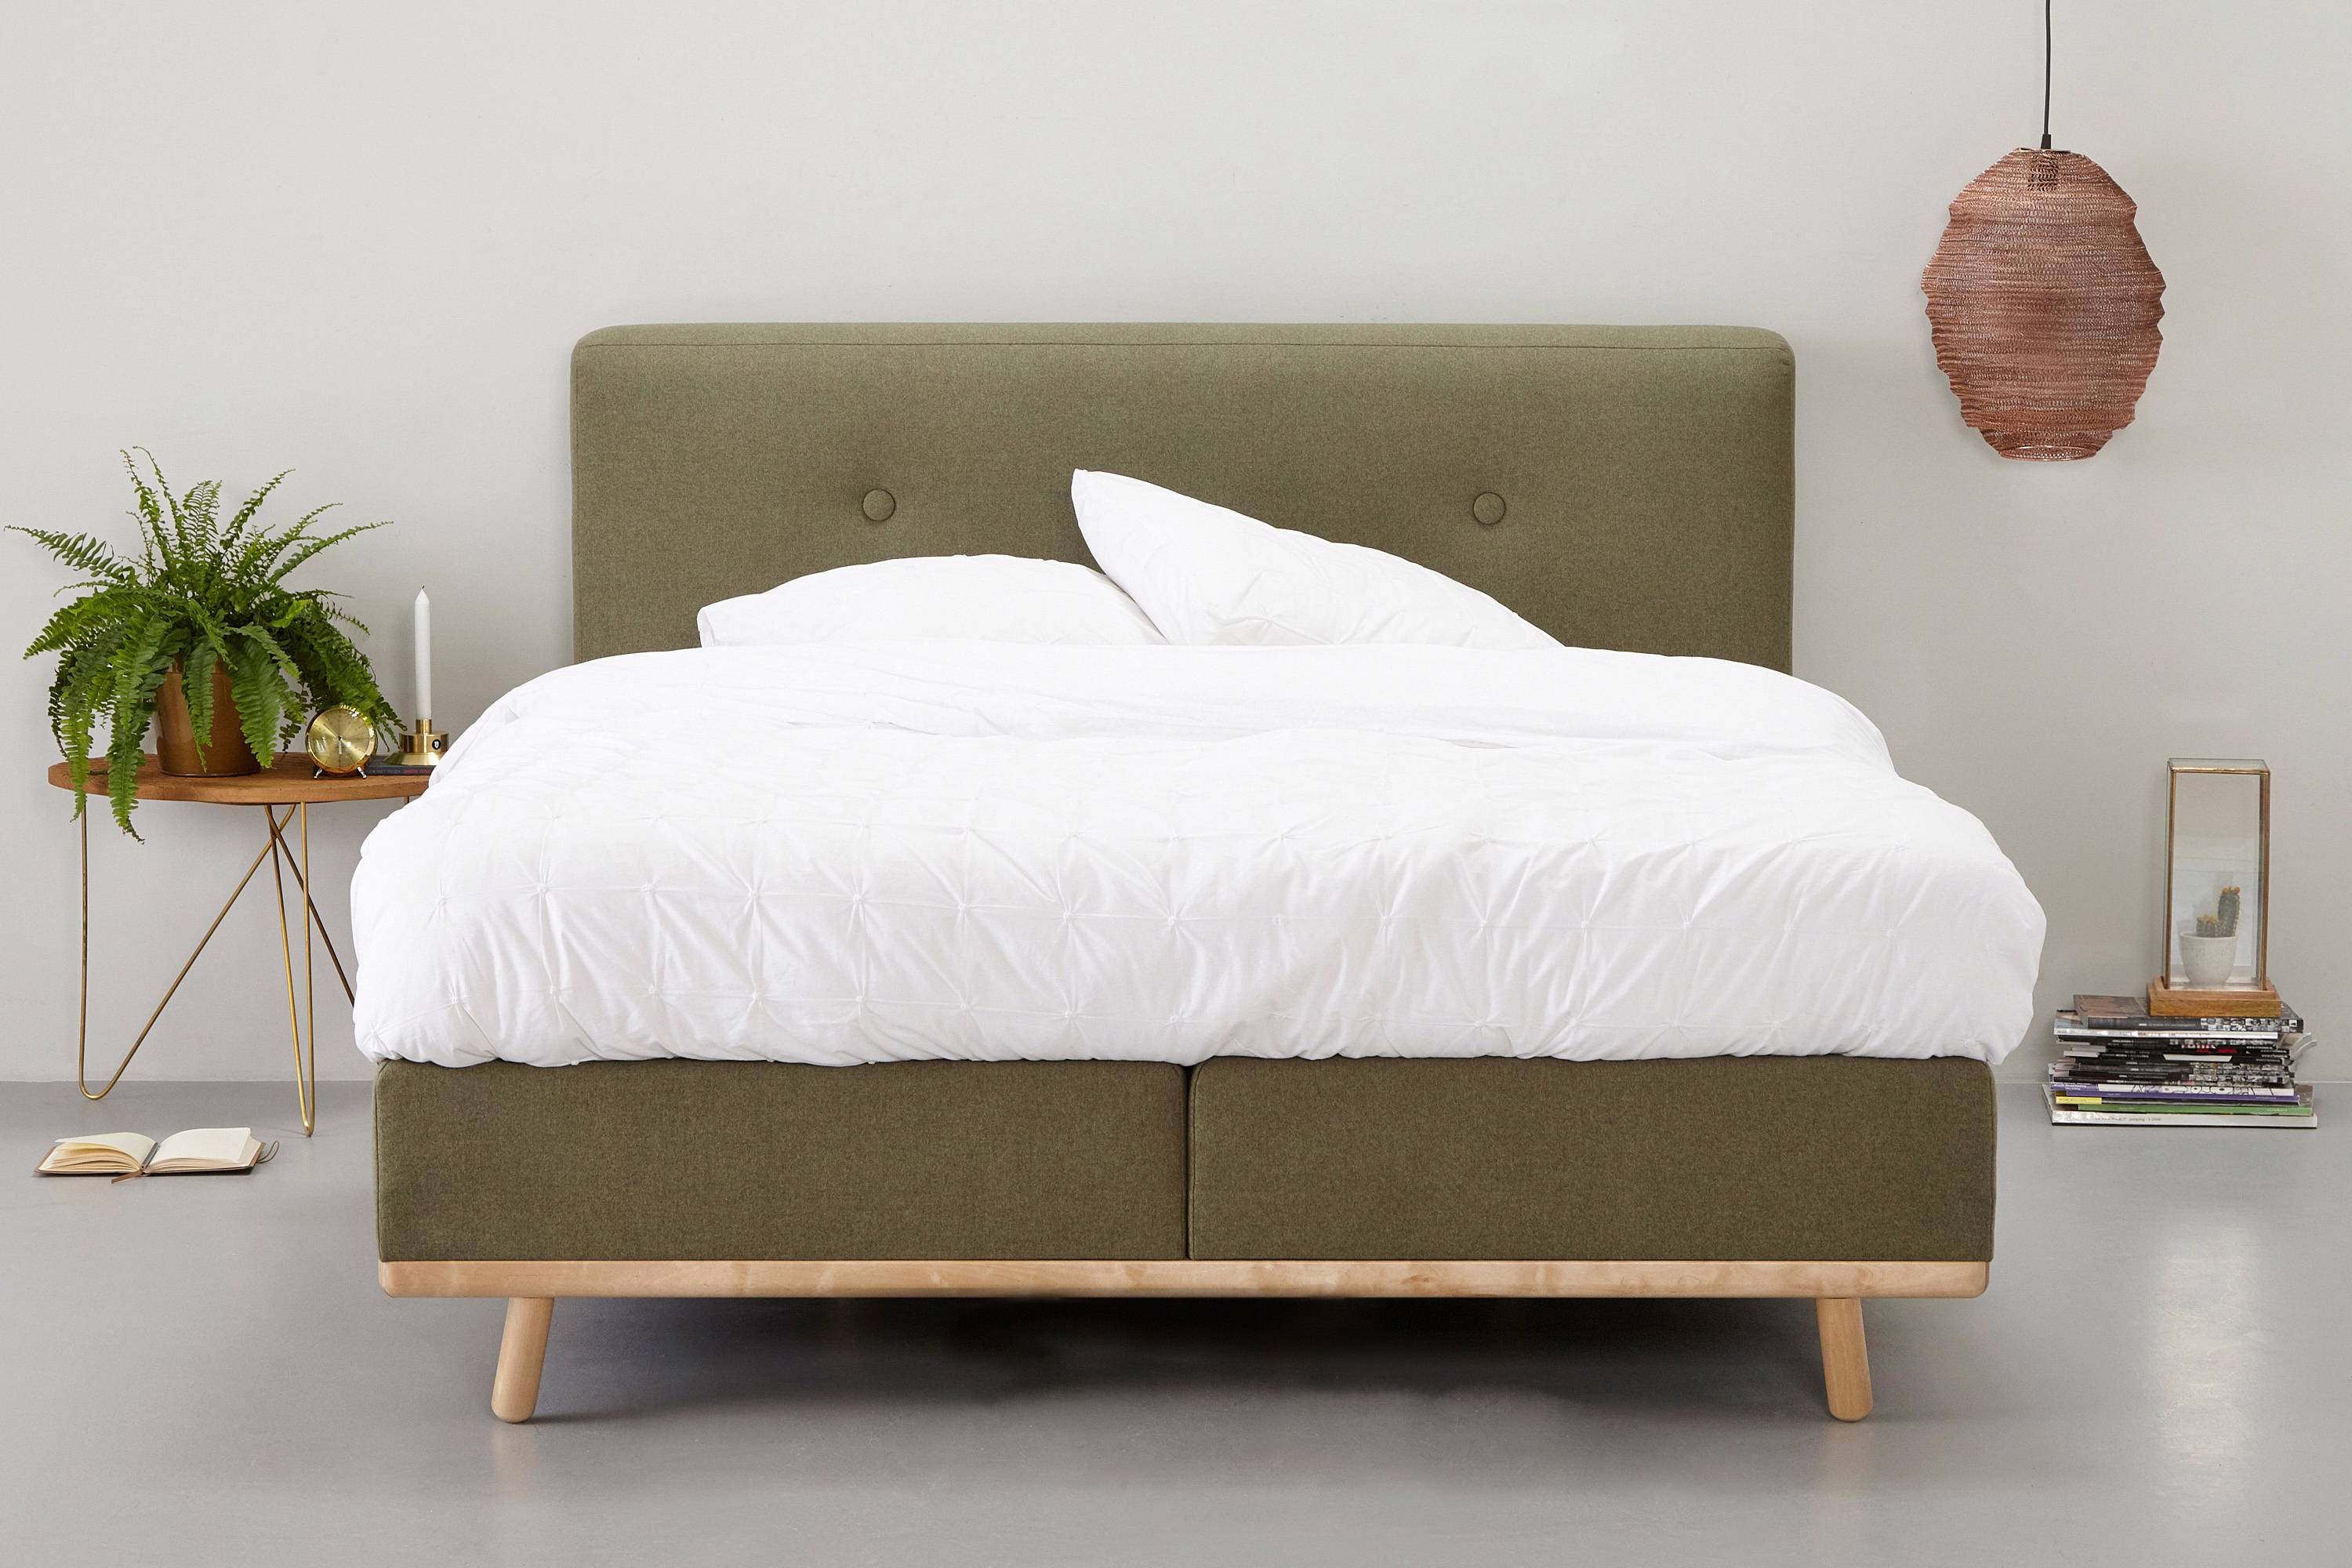 whkmp's own complete boxspring Florence